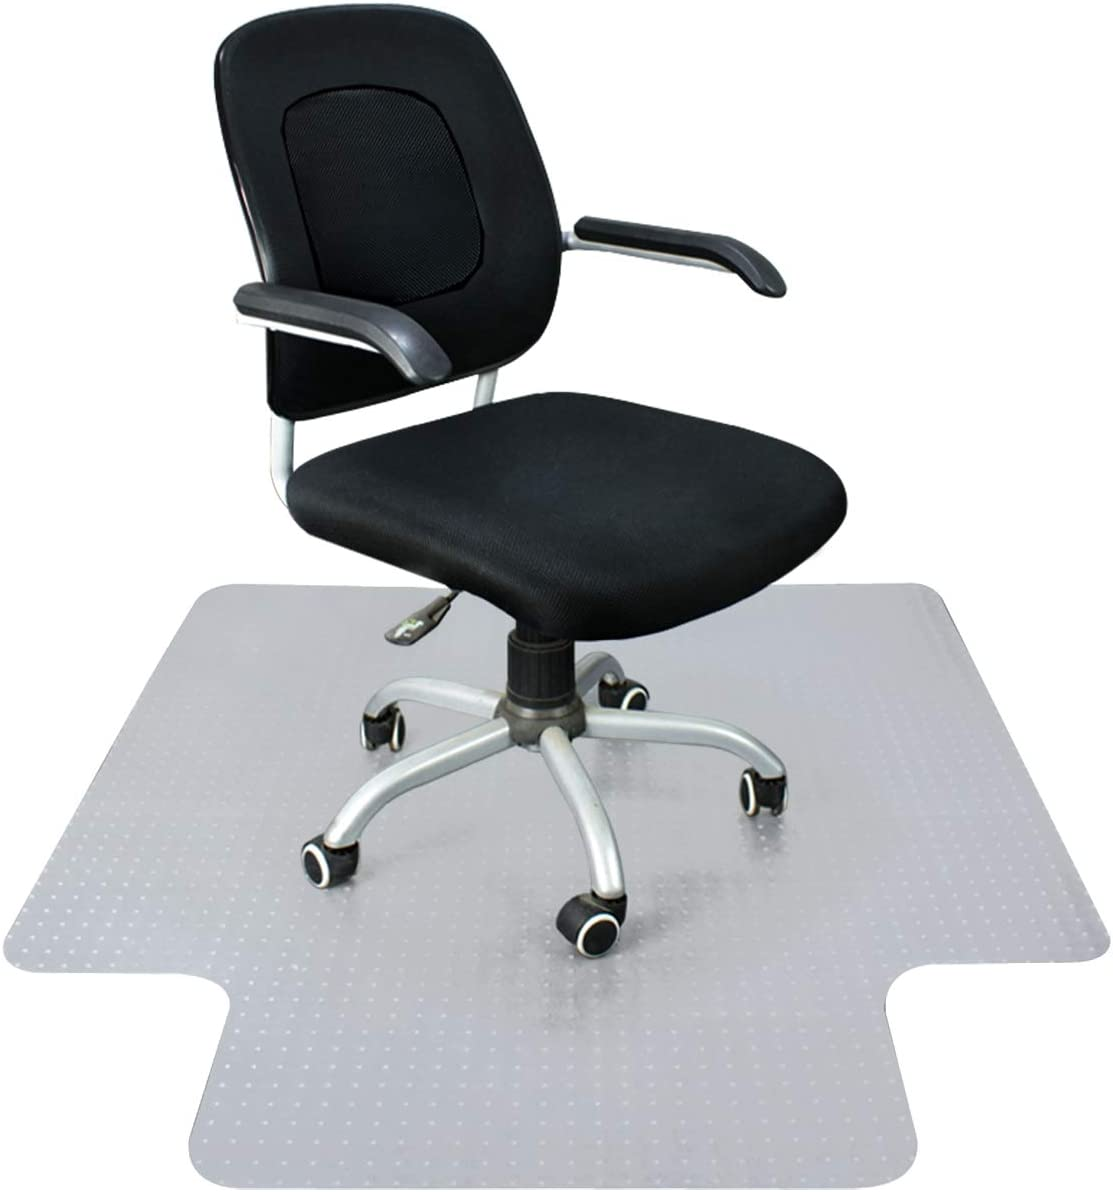 """Super Deal Upgraded 48"""" X 36""""/ 60'' X 48'' - 1/8"""" Heavy Duty Carpet Chair Mat w/Lip, Transparent Chair mat for Office Chair Rug Carpet Floor Computer Desk Low and Medium Pile Carpets (#2) (4836'') : Office Products"""